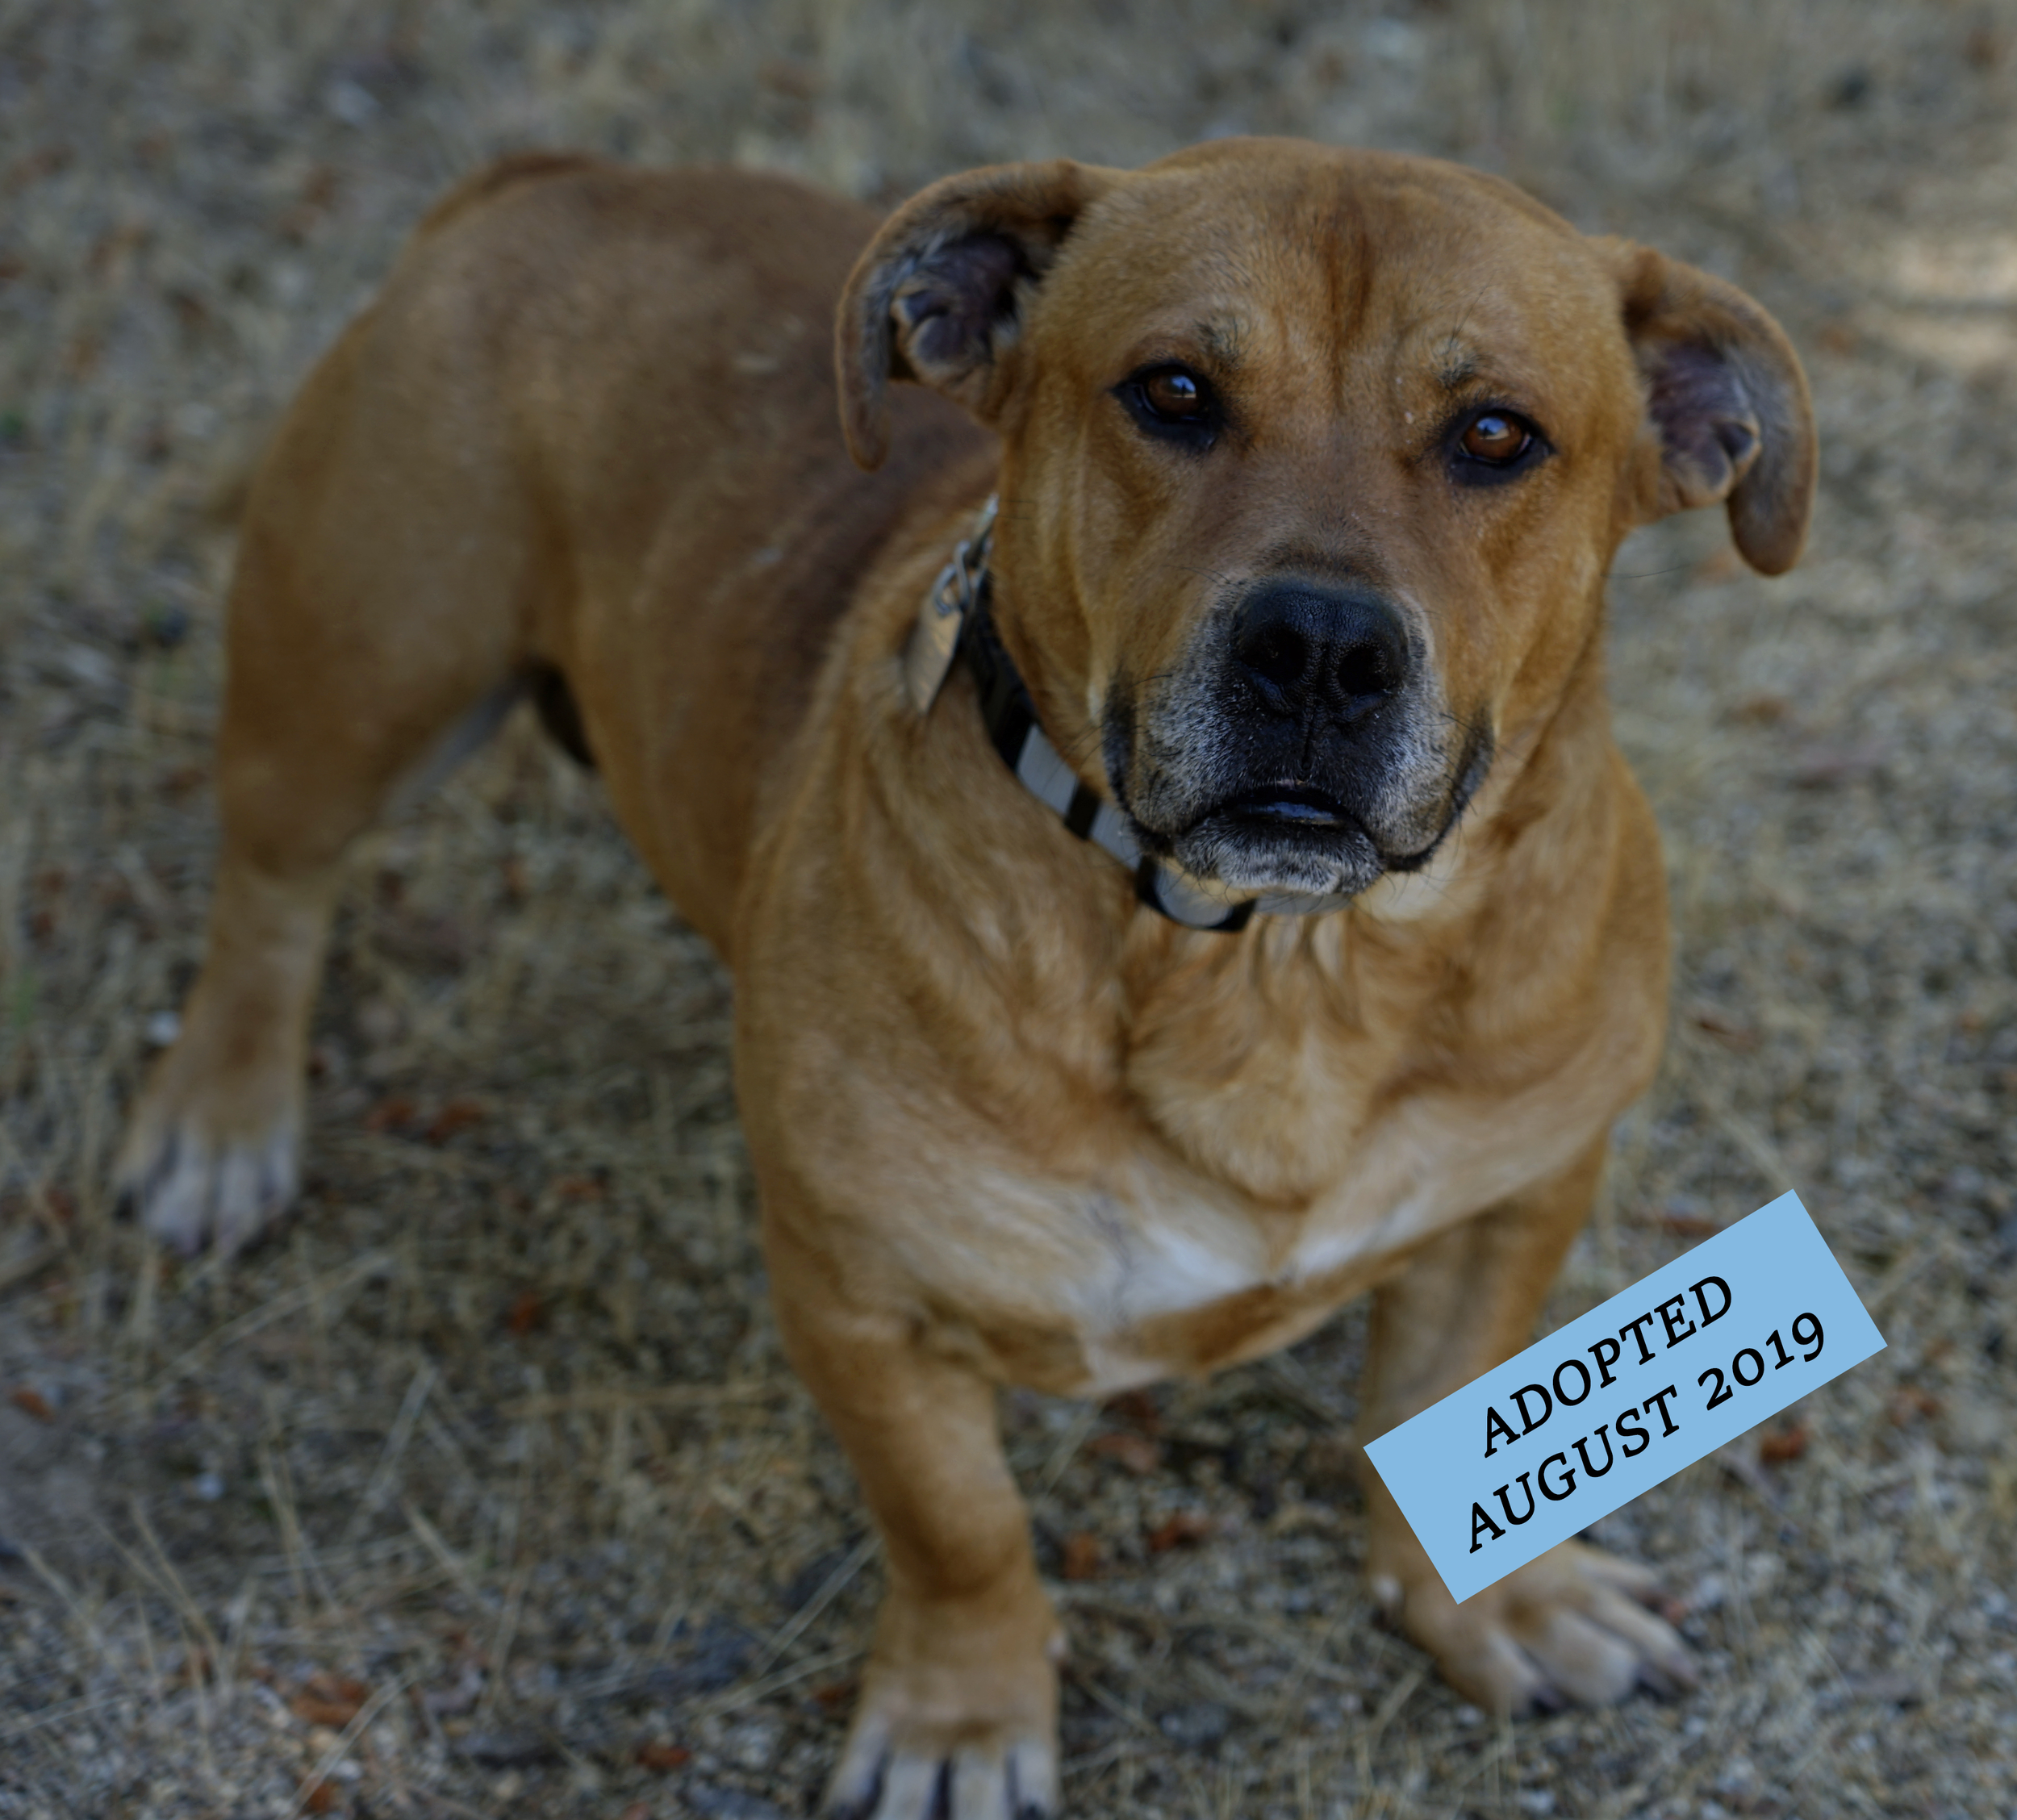 conner - Conner came to us on May 22, 2019 from Kern County Animal Services. He was picked up by animal control running stray on the East side of Bakersfield a few weeks prior to us meeting him. He is super sweet and friendly with everyone he comes in contact with. He tends to move at his own pace, which is slow. He is potty trained and has done fantastic in his kennel here at Shadow Ranch. He loves to play with Billie in the yard whenever he gets the chance.